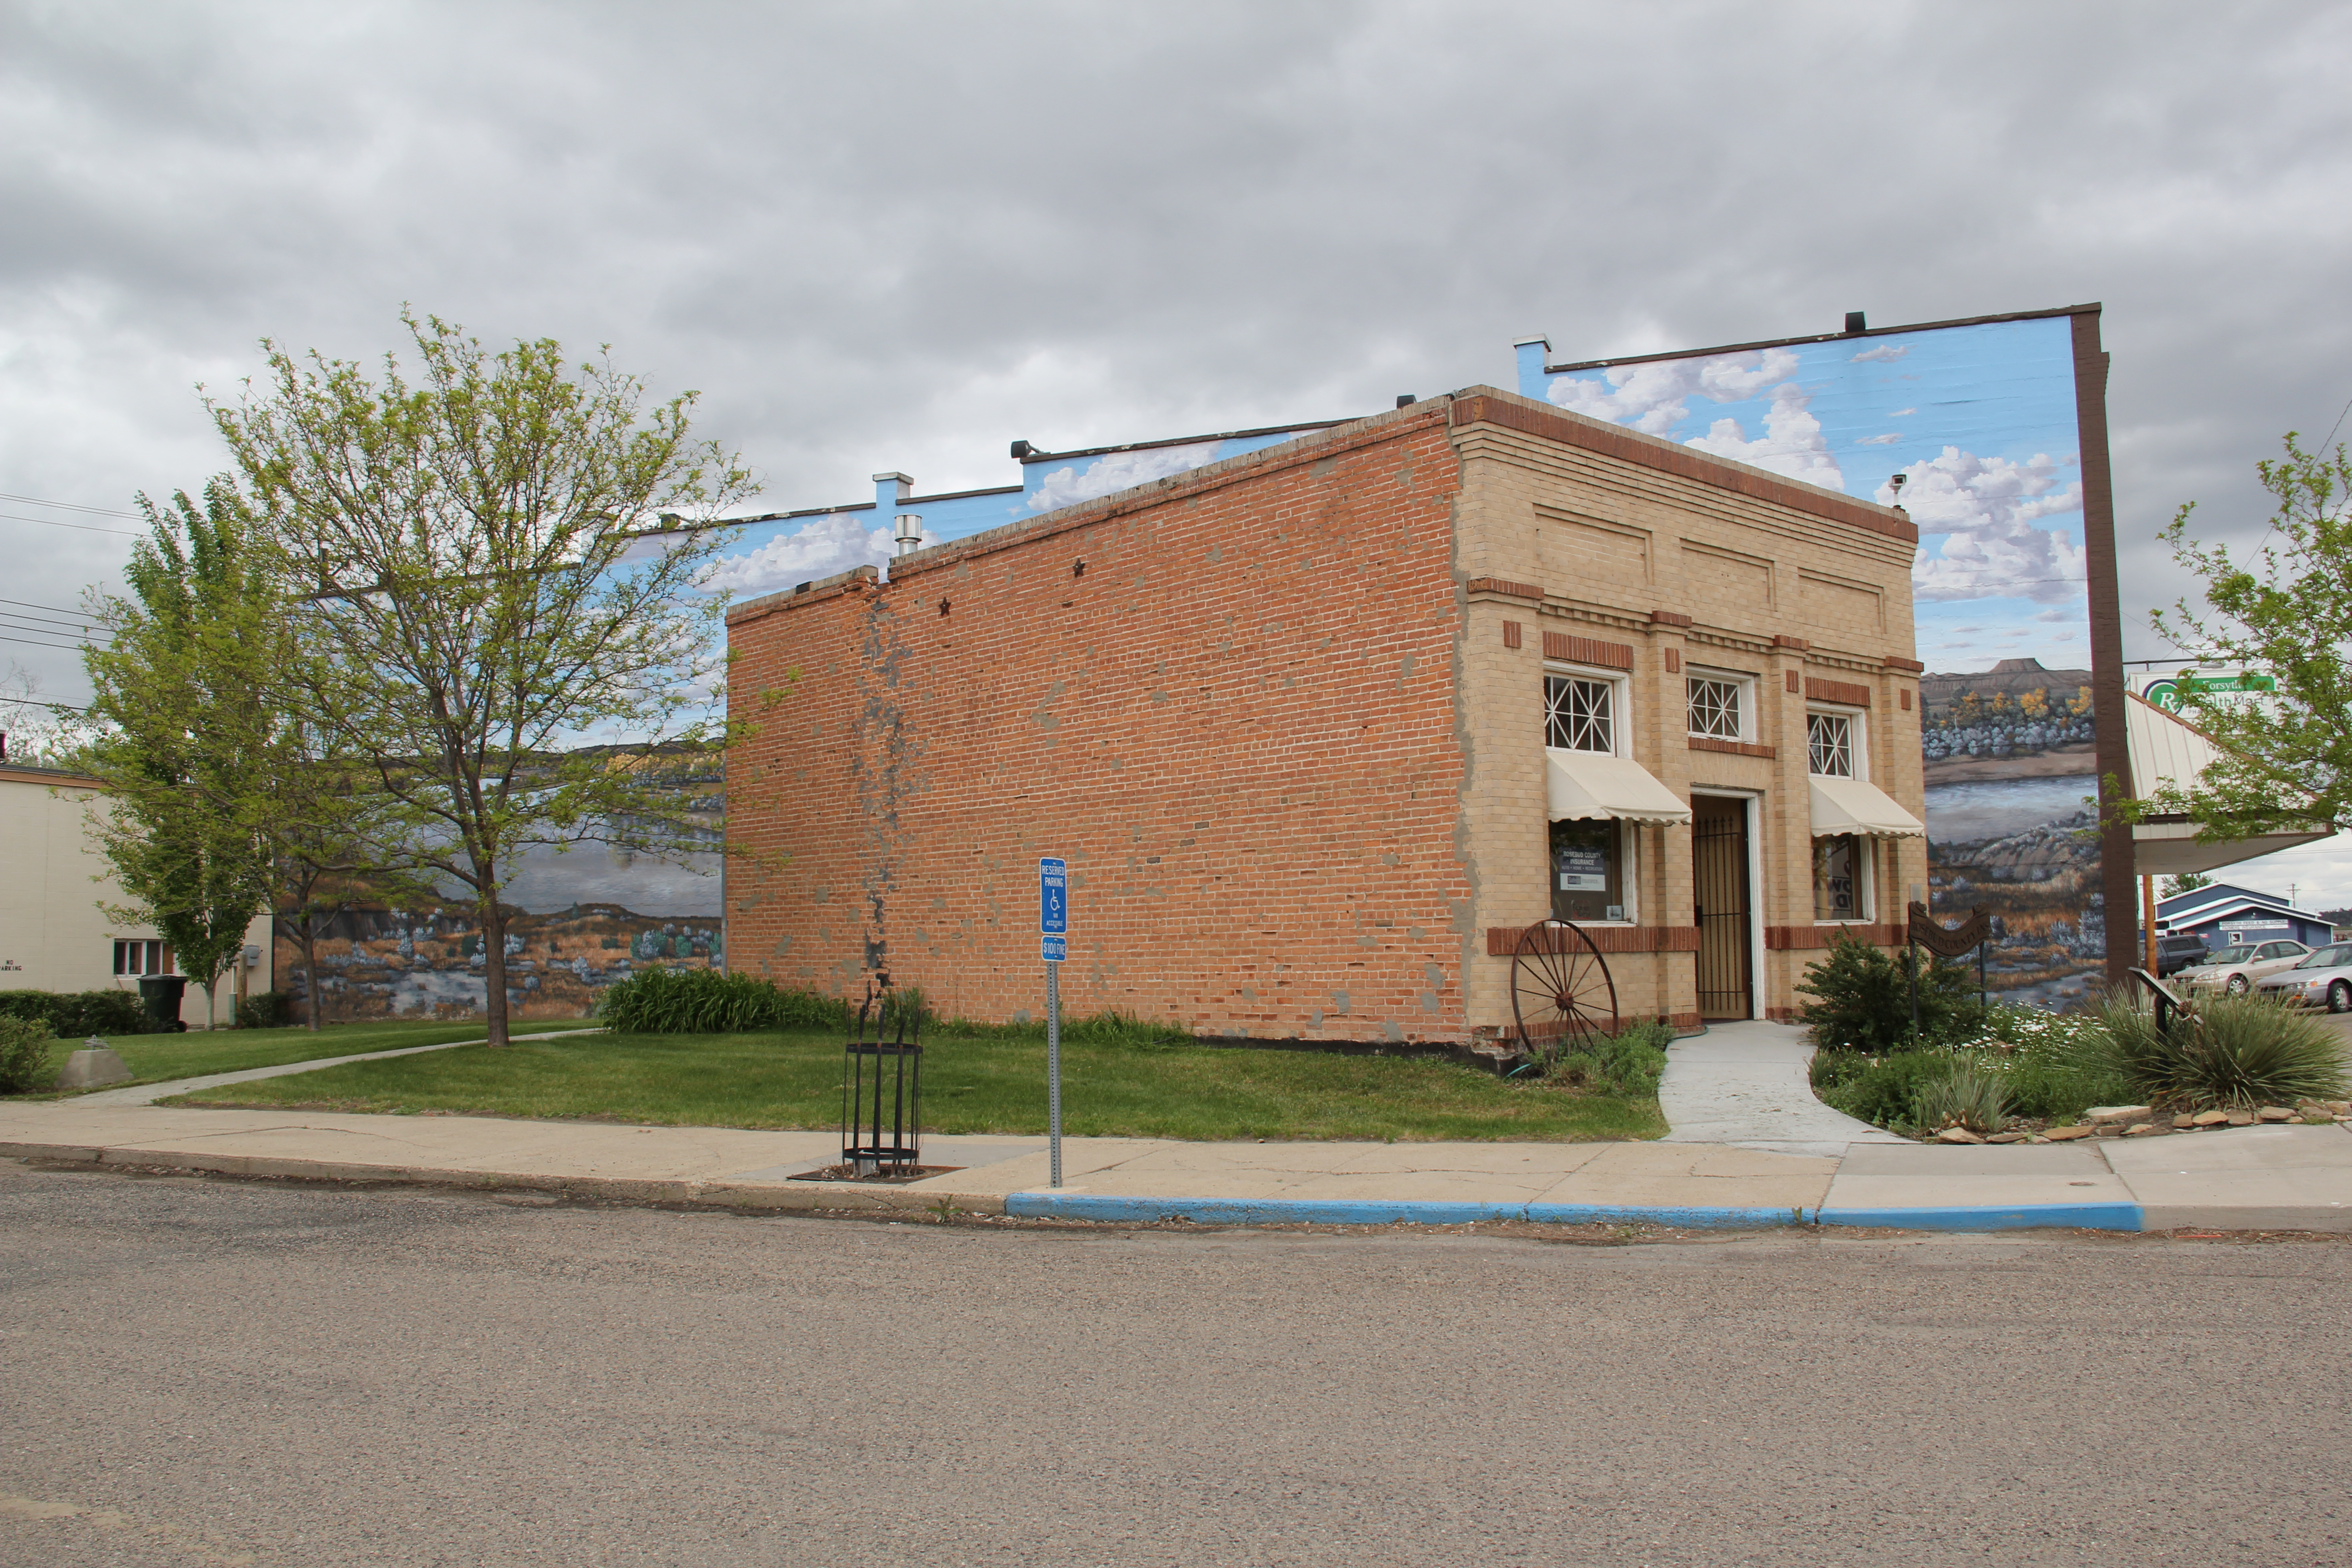 Montana rosebud county forsyth -  I Came Into Forsyth And Stopped At Something New At The Town S Most Prominent Crossroads At Main And 10th Avenue It Was The Vananda State Bank